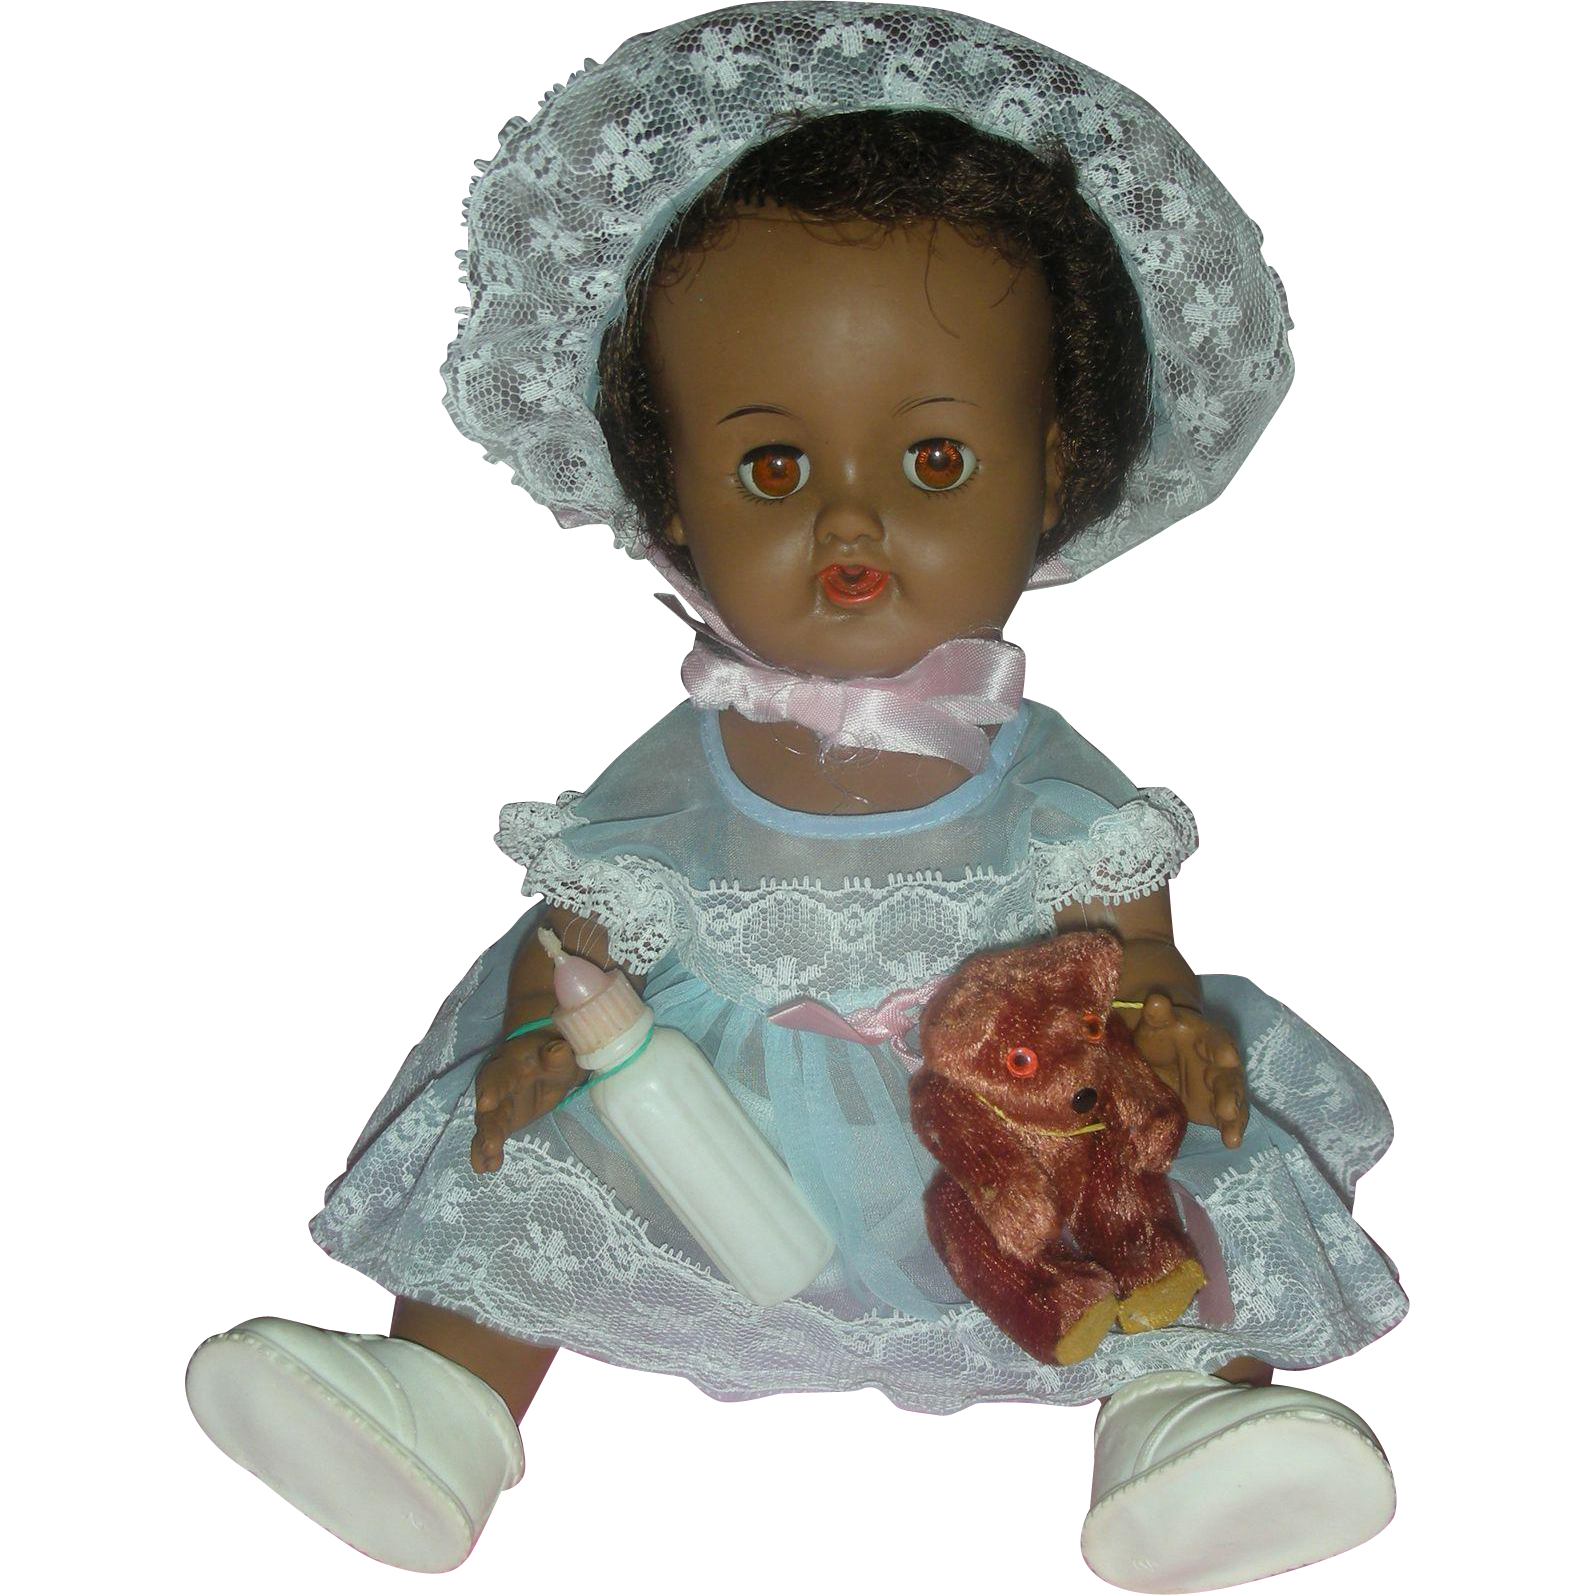 Rare Vintage Black Ideal Betsy Wetsy Drink and Wet Doll Wearing Blue Organdy Party Dress 1950's Drink and Wet